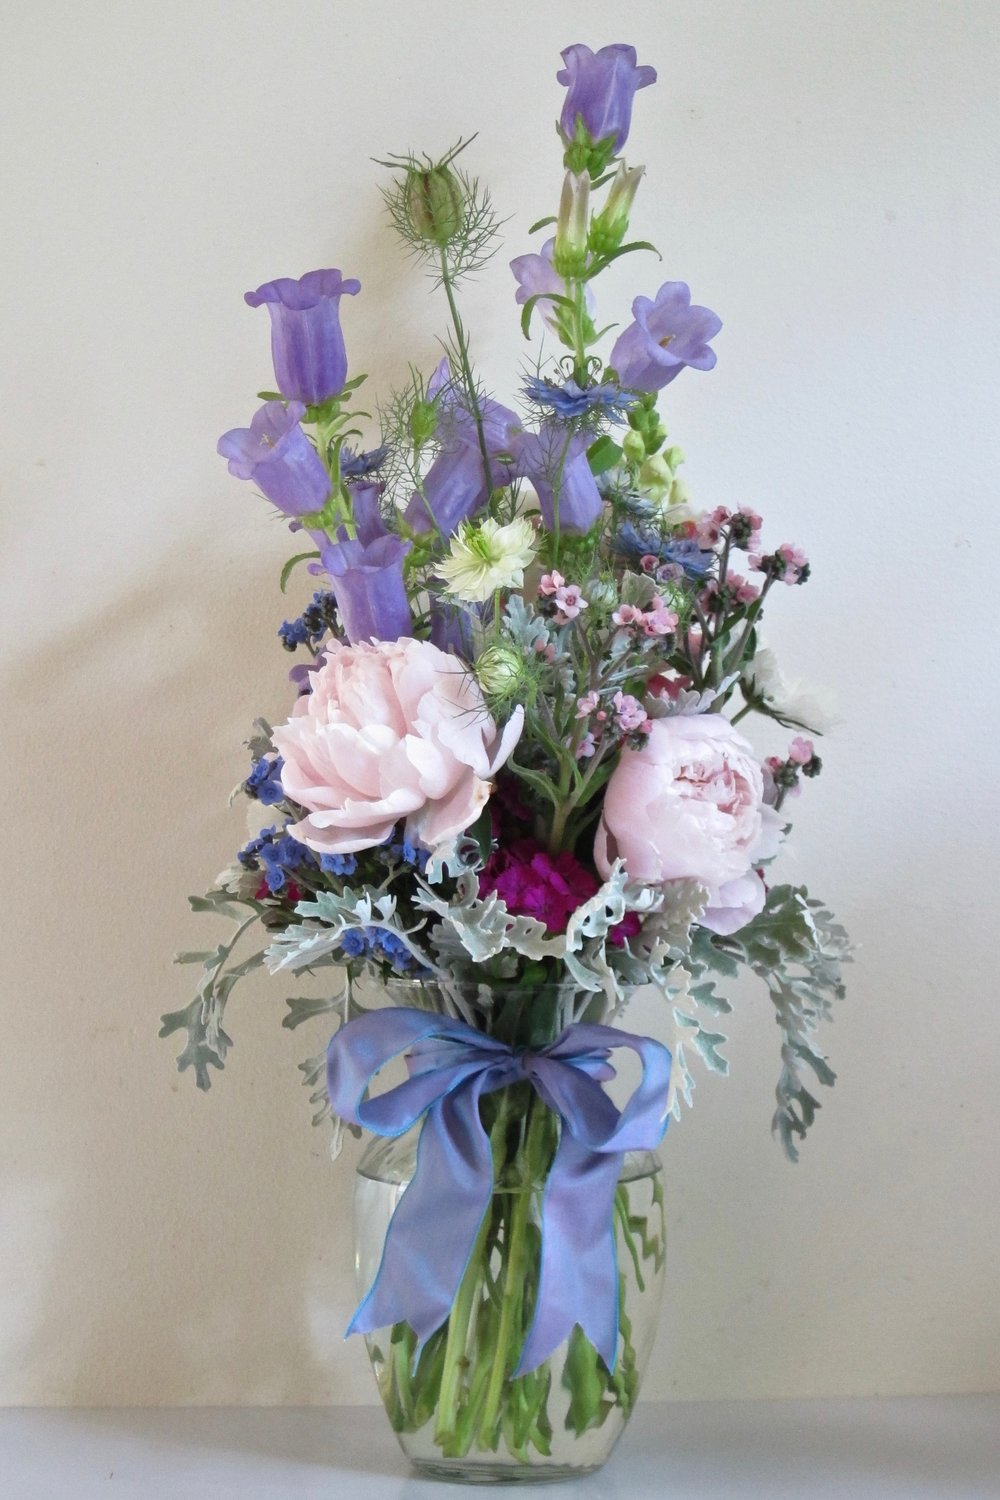 PASTEL PEONIES   and blue campanula bells, white scabiosa, nigella pods and dusty miller, $45.